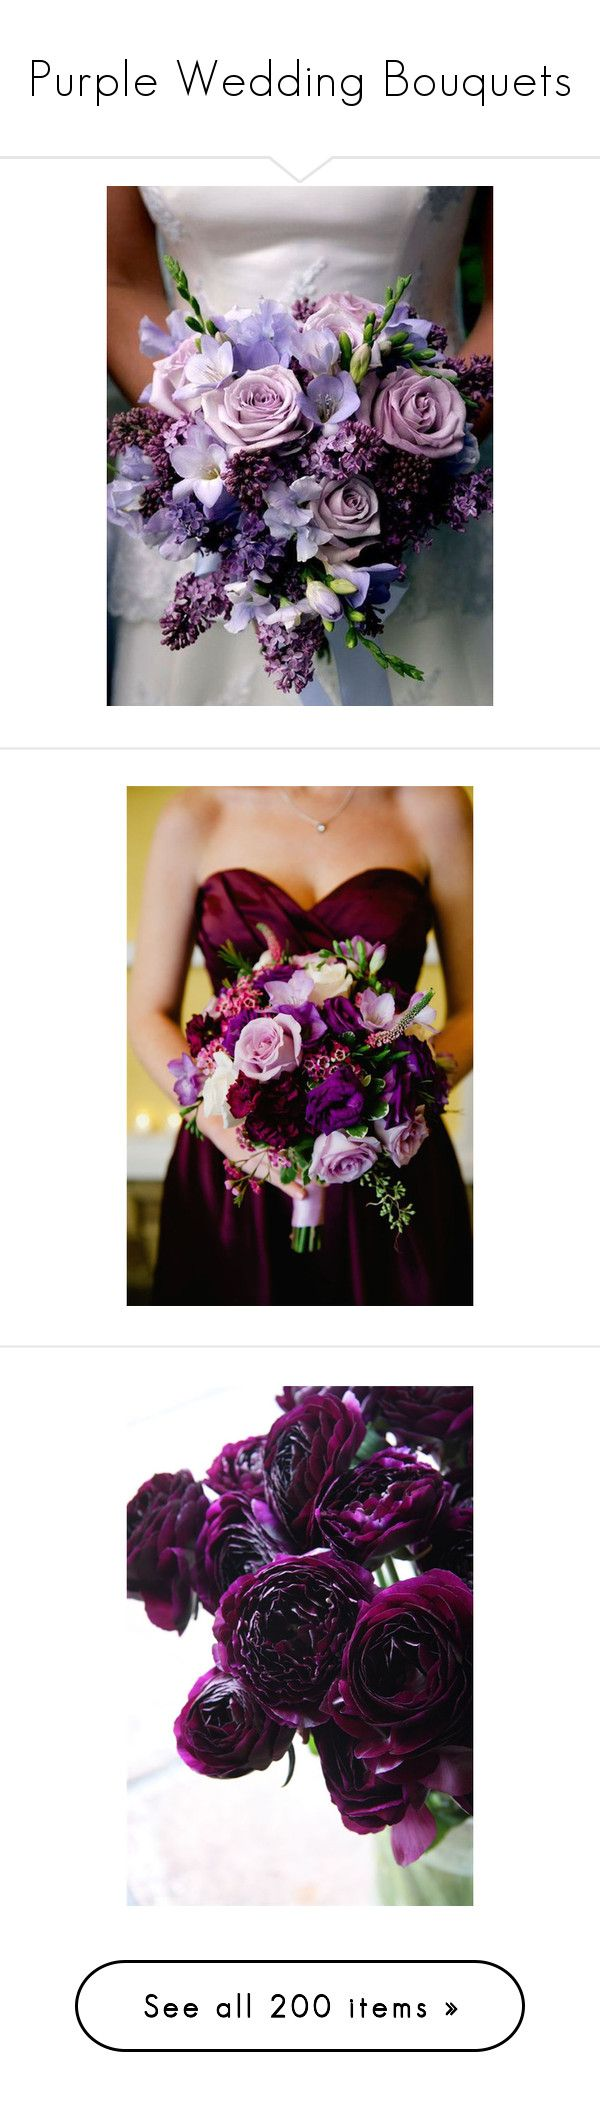 """""""Purple Wedding Bouquets"""" by the-student-bride ❤ liked on Polyvore featuring wedding, purplebouquet, home, home decor, accessories, floral decor, fake flower bouquets, silk flowers, fake silk flowers and purple calla lily bouquet"""